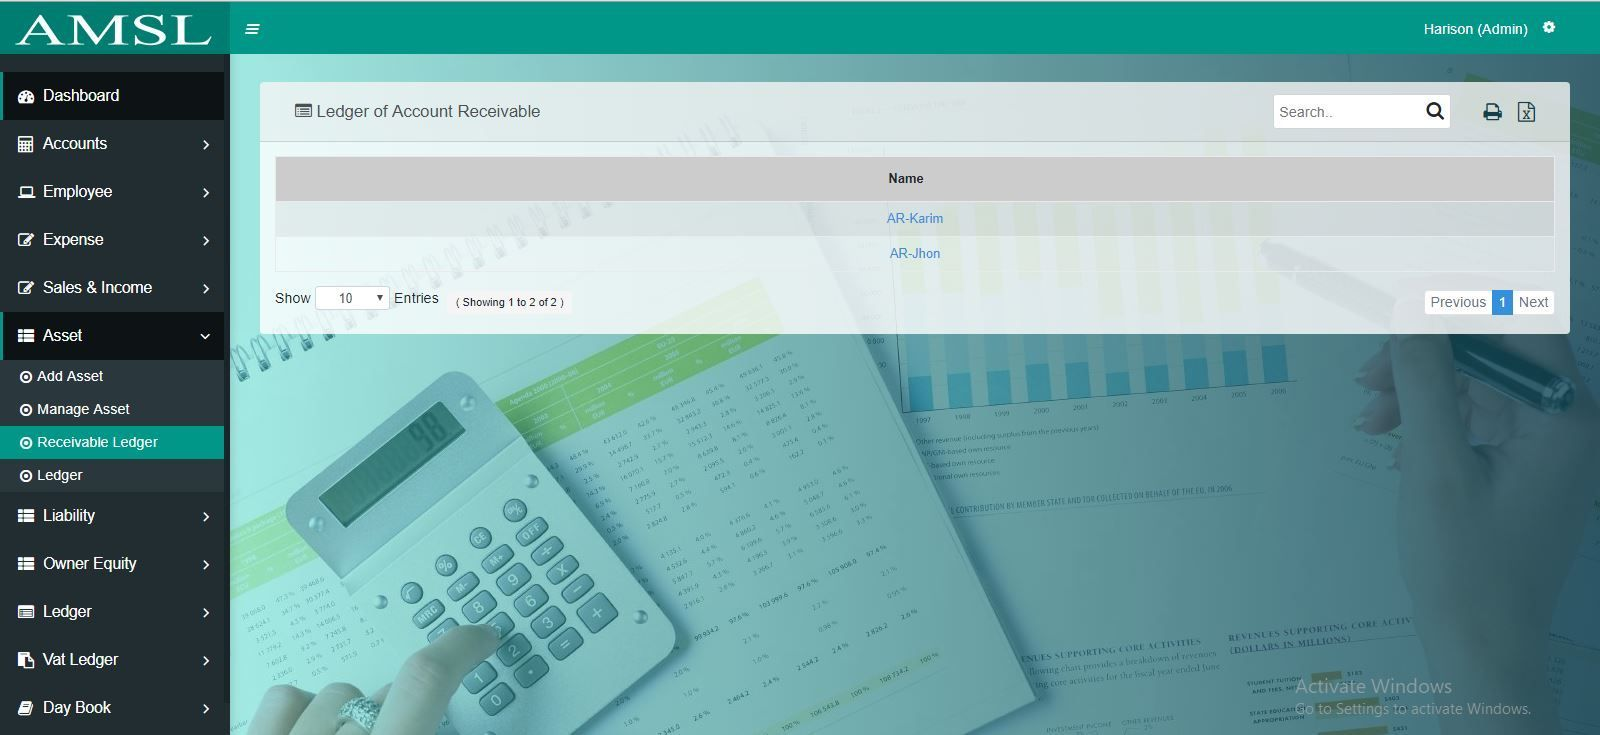 AMSL - Service Based Accounting Management System  Screenshot 11